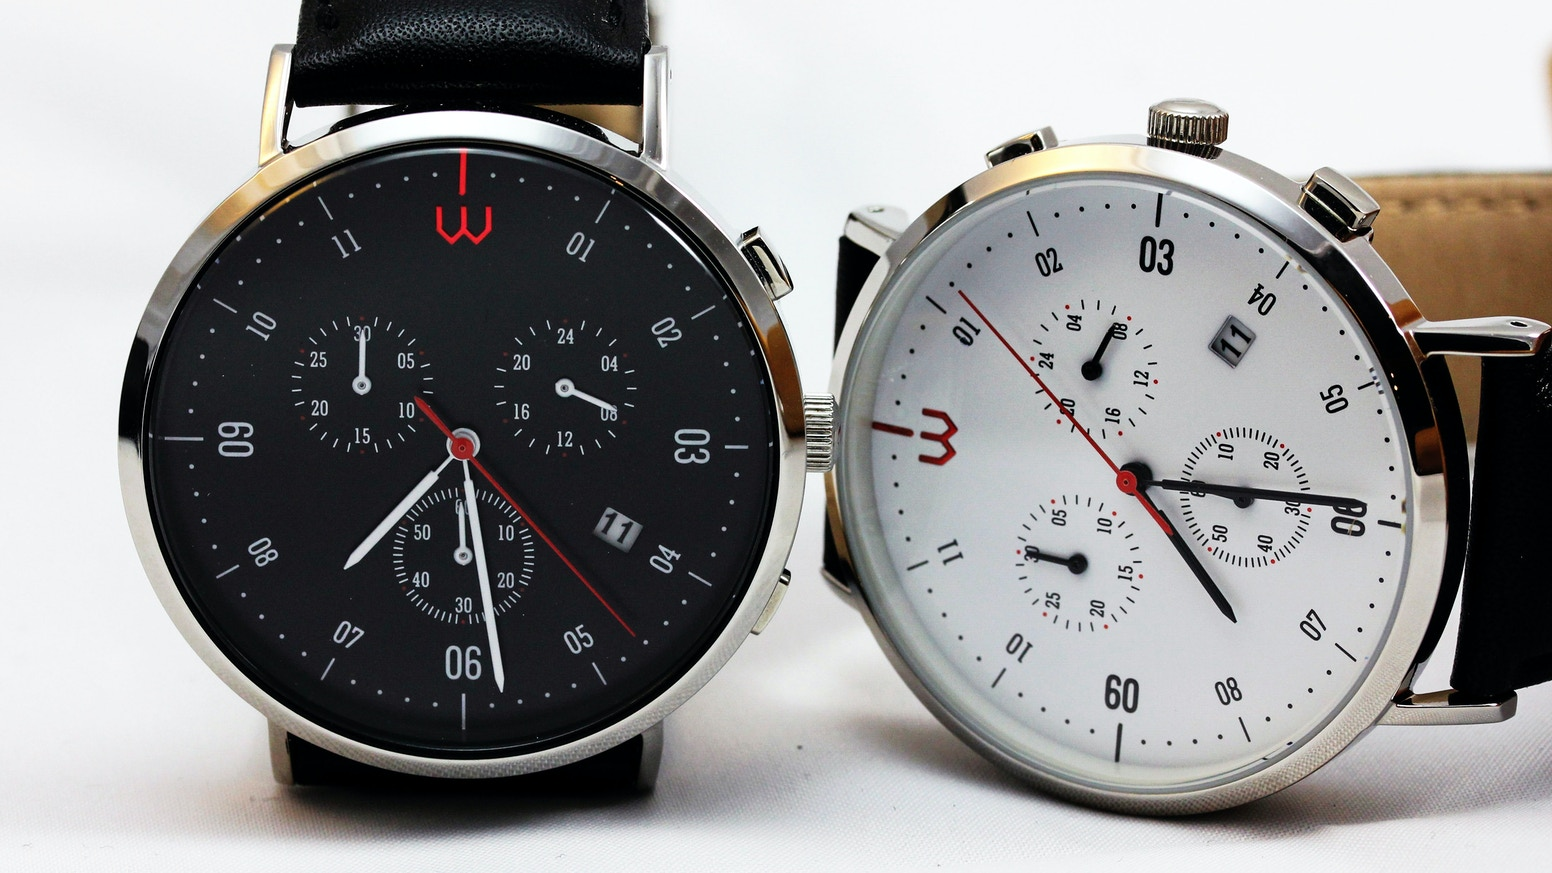 Elegant classic watch. Smart without charging. Do extra things with your watch - control your phone or accessories. Easy & cool.